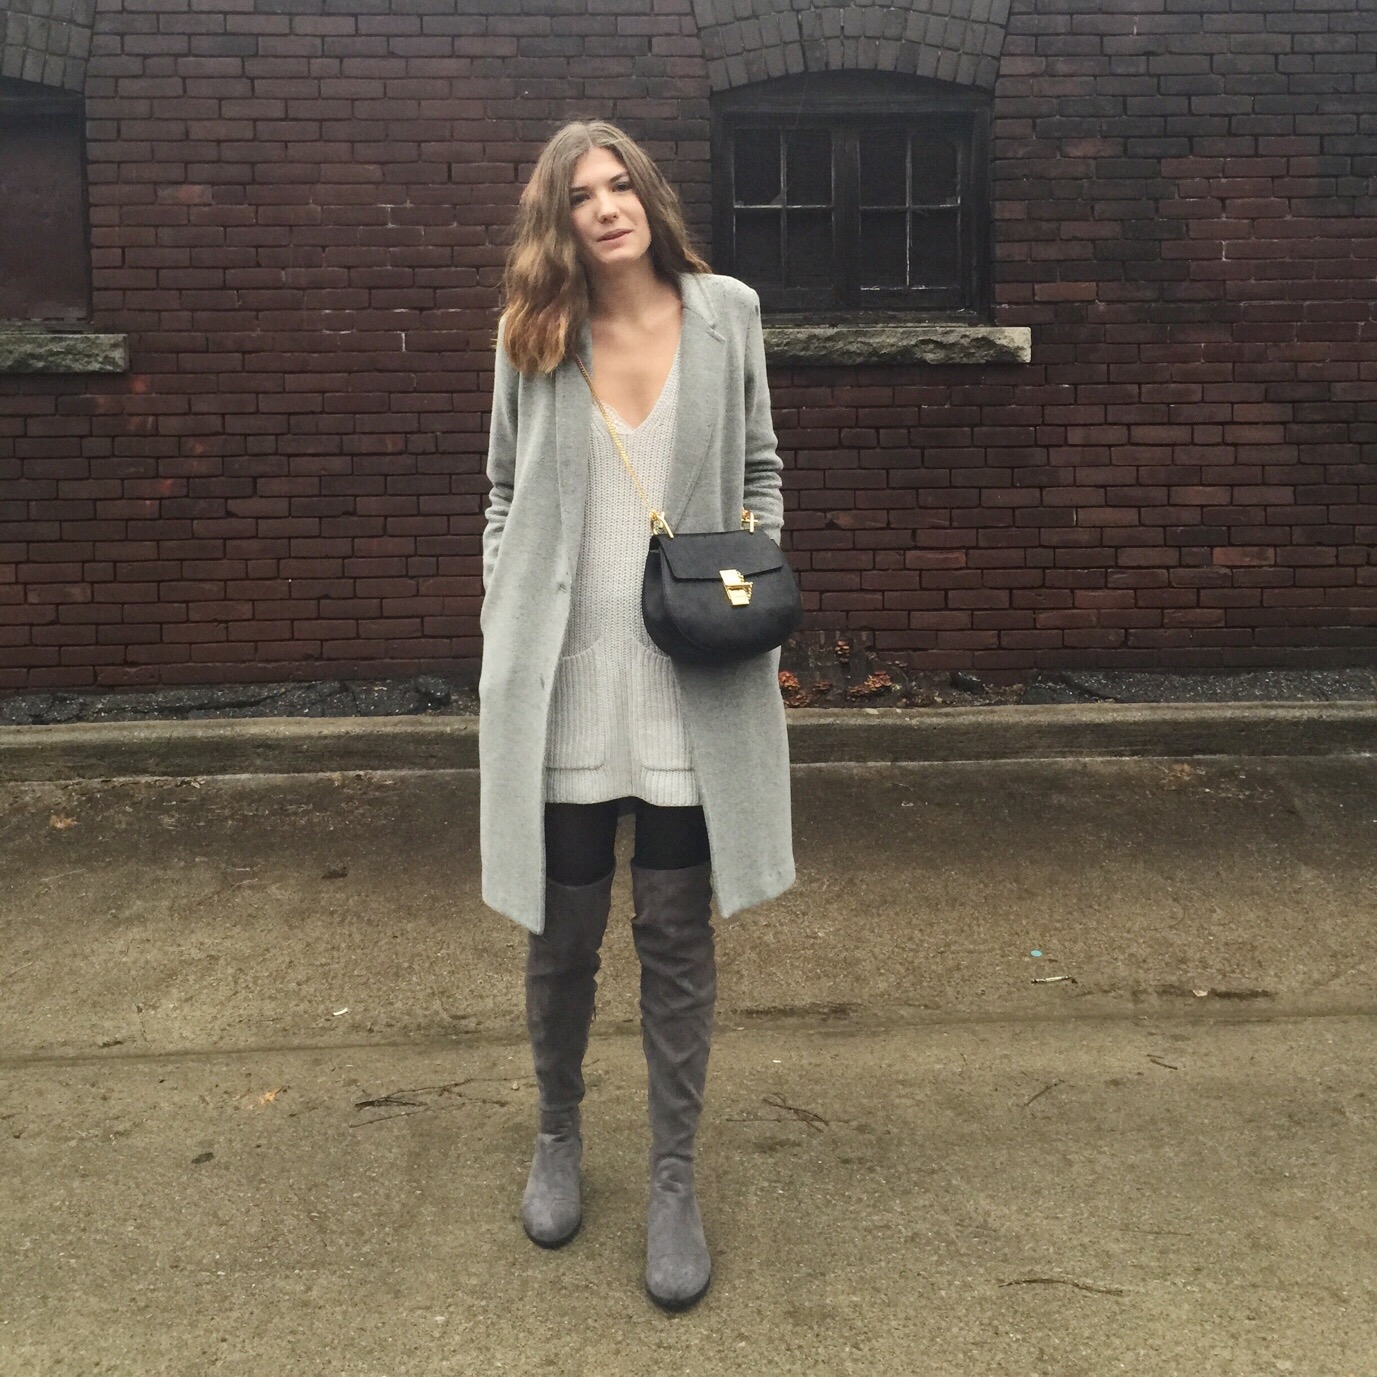 a5795a6cc99 I finally found a good looking + affordable pair of over the knee boots!  They aren t anything fancy (faux suede from Forever 21) but they were a  bargain and ...